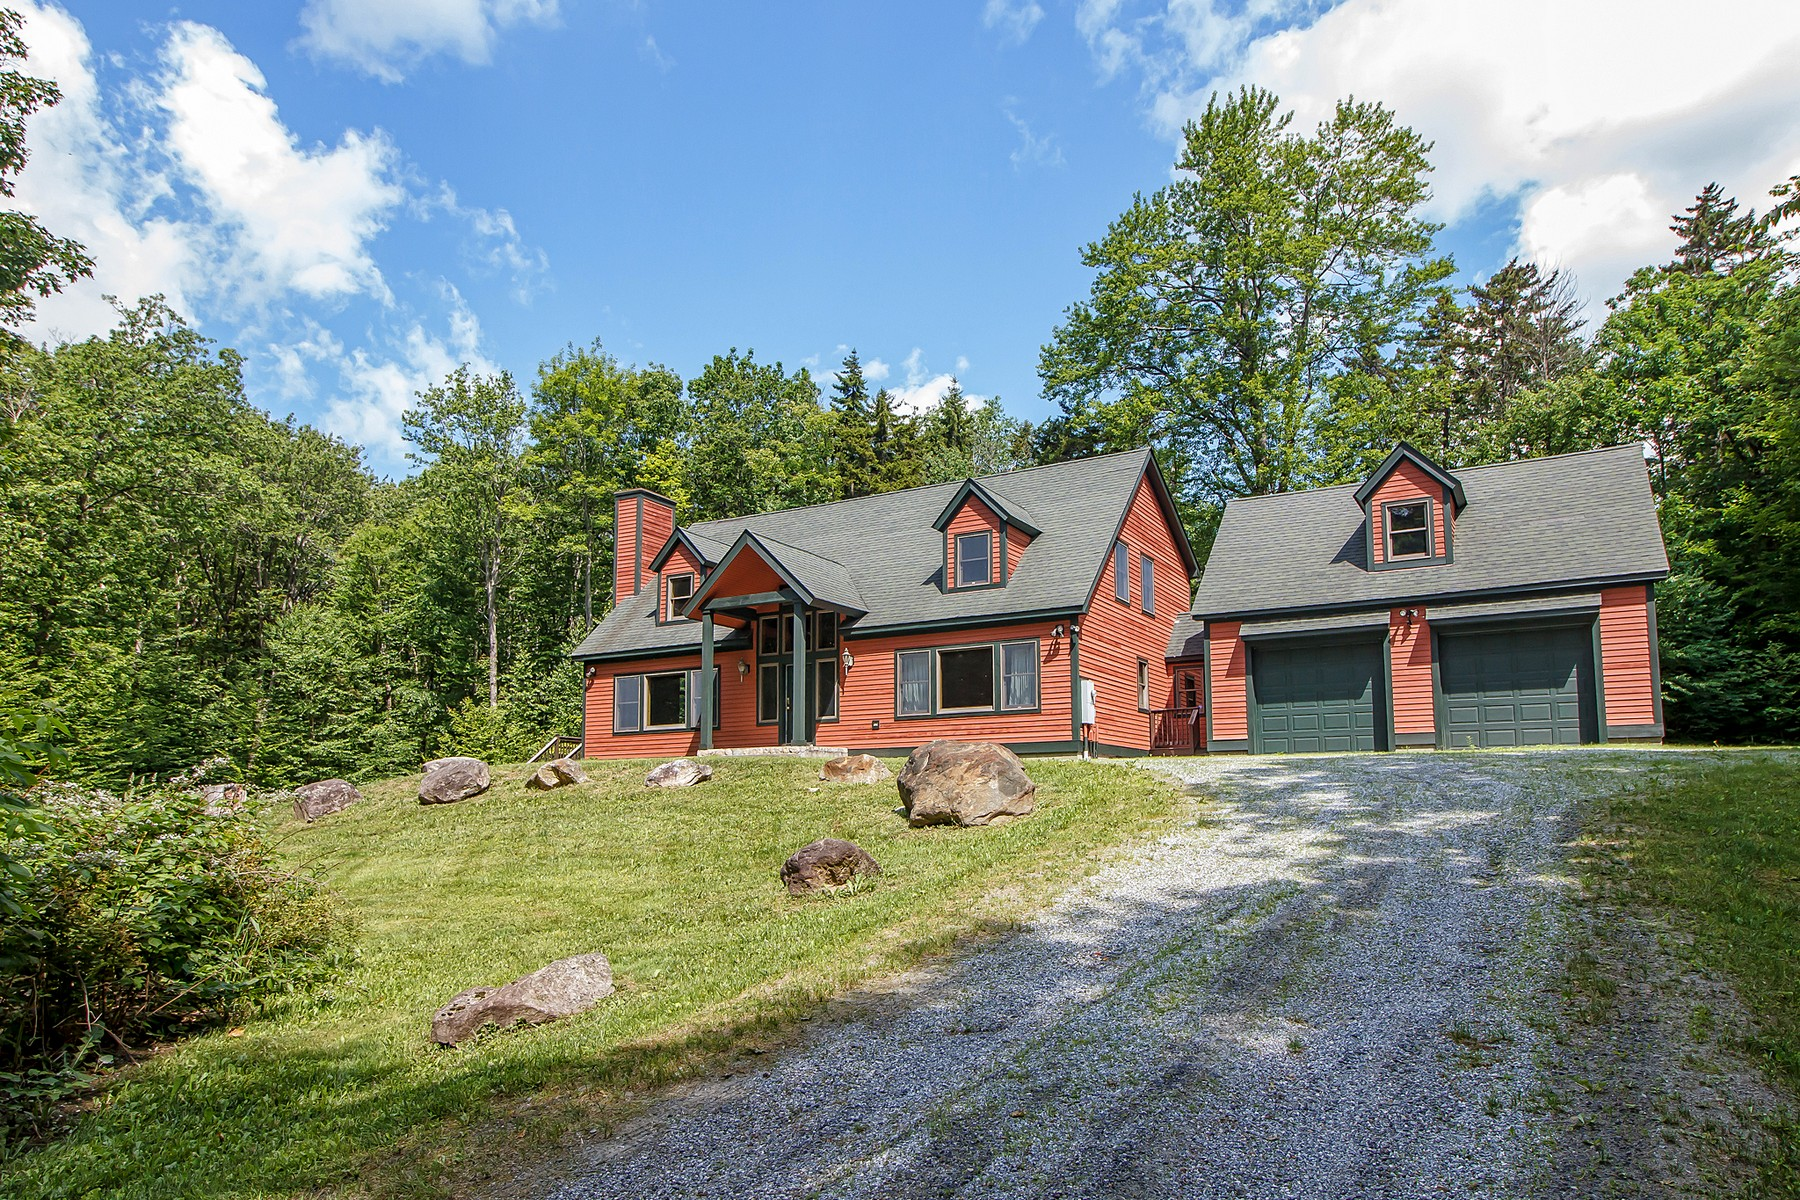 Single Family Homes for Sale at Spacious Ski Home Near Stratton 83 Benson Fuller Drive Winhall, Vermont 05340 United States